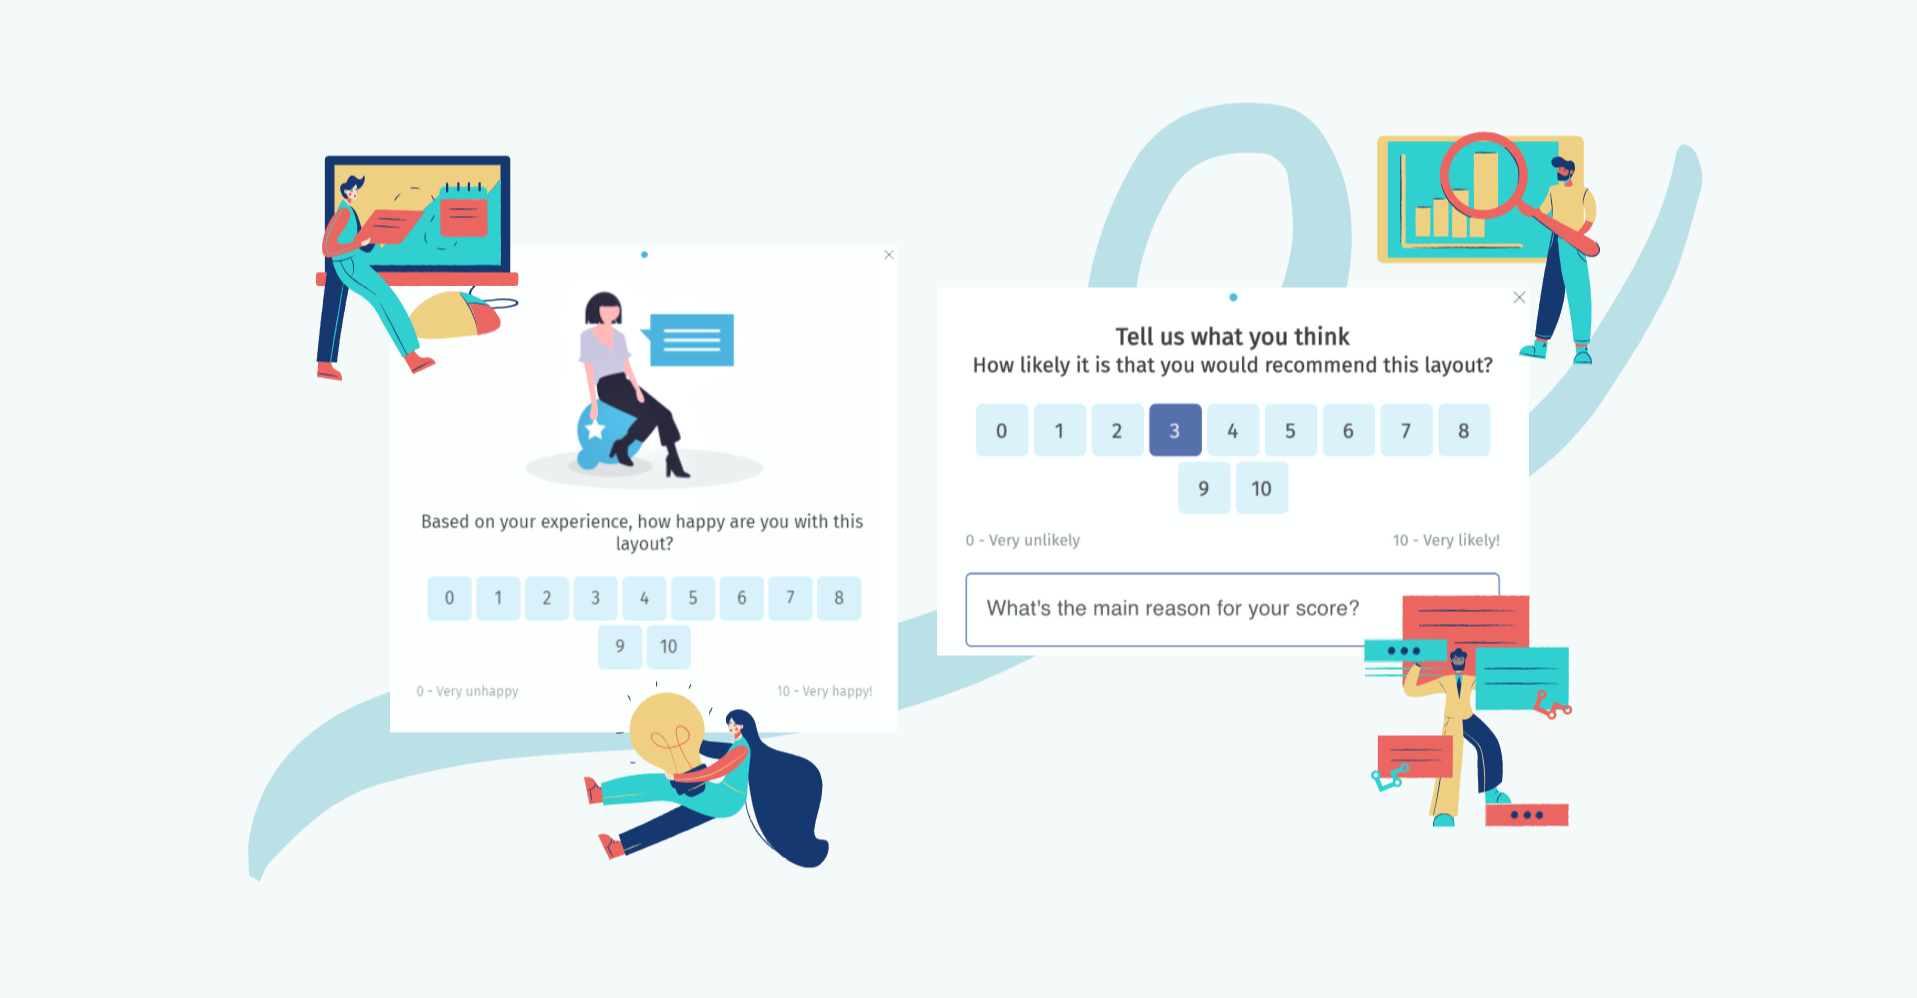 Get started with Net Promoter Score: How to create an NPS survey for your website